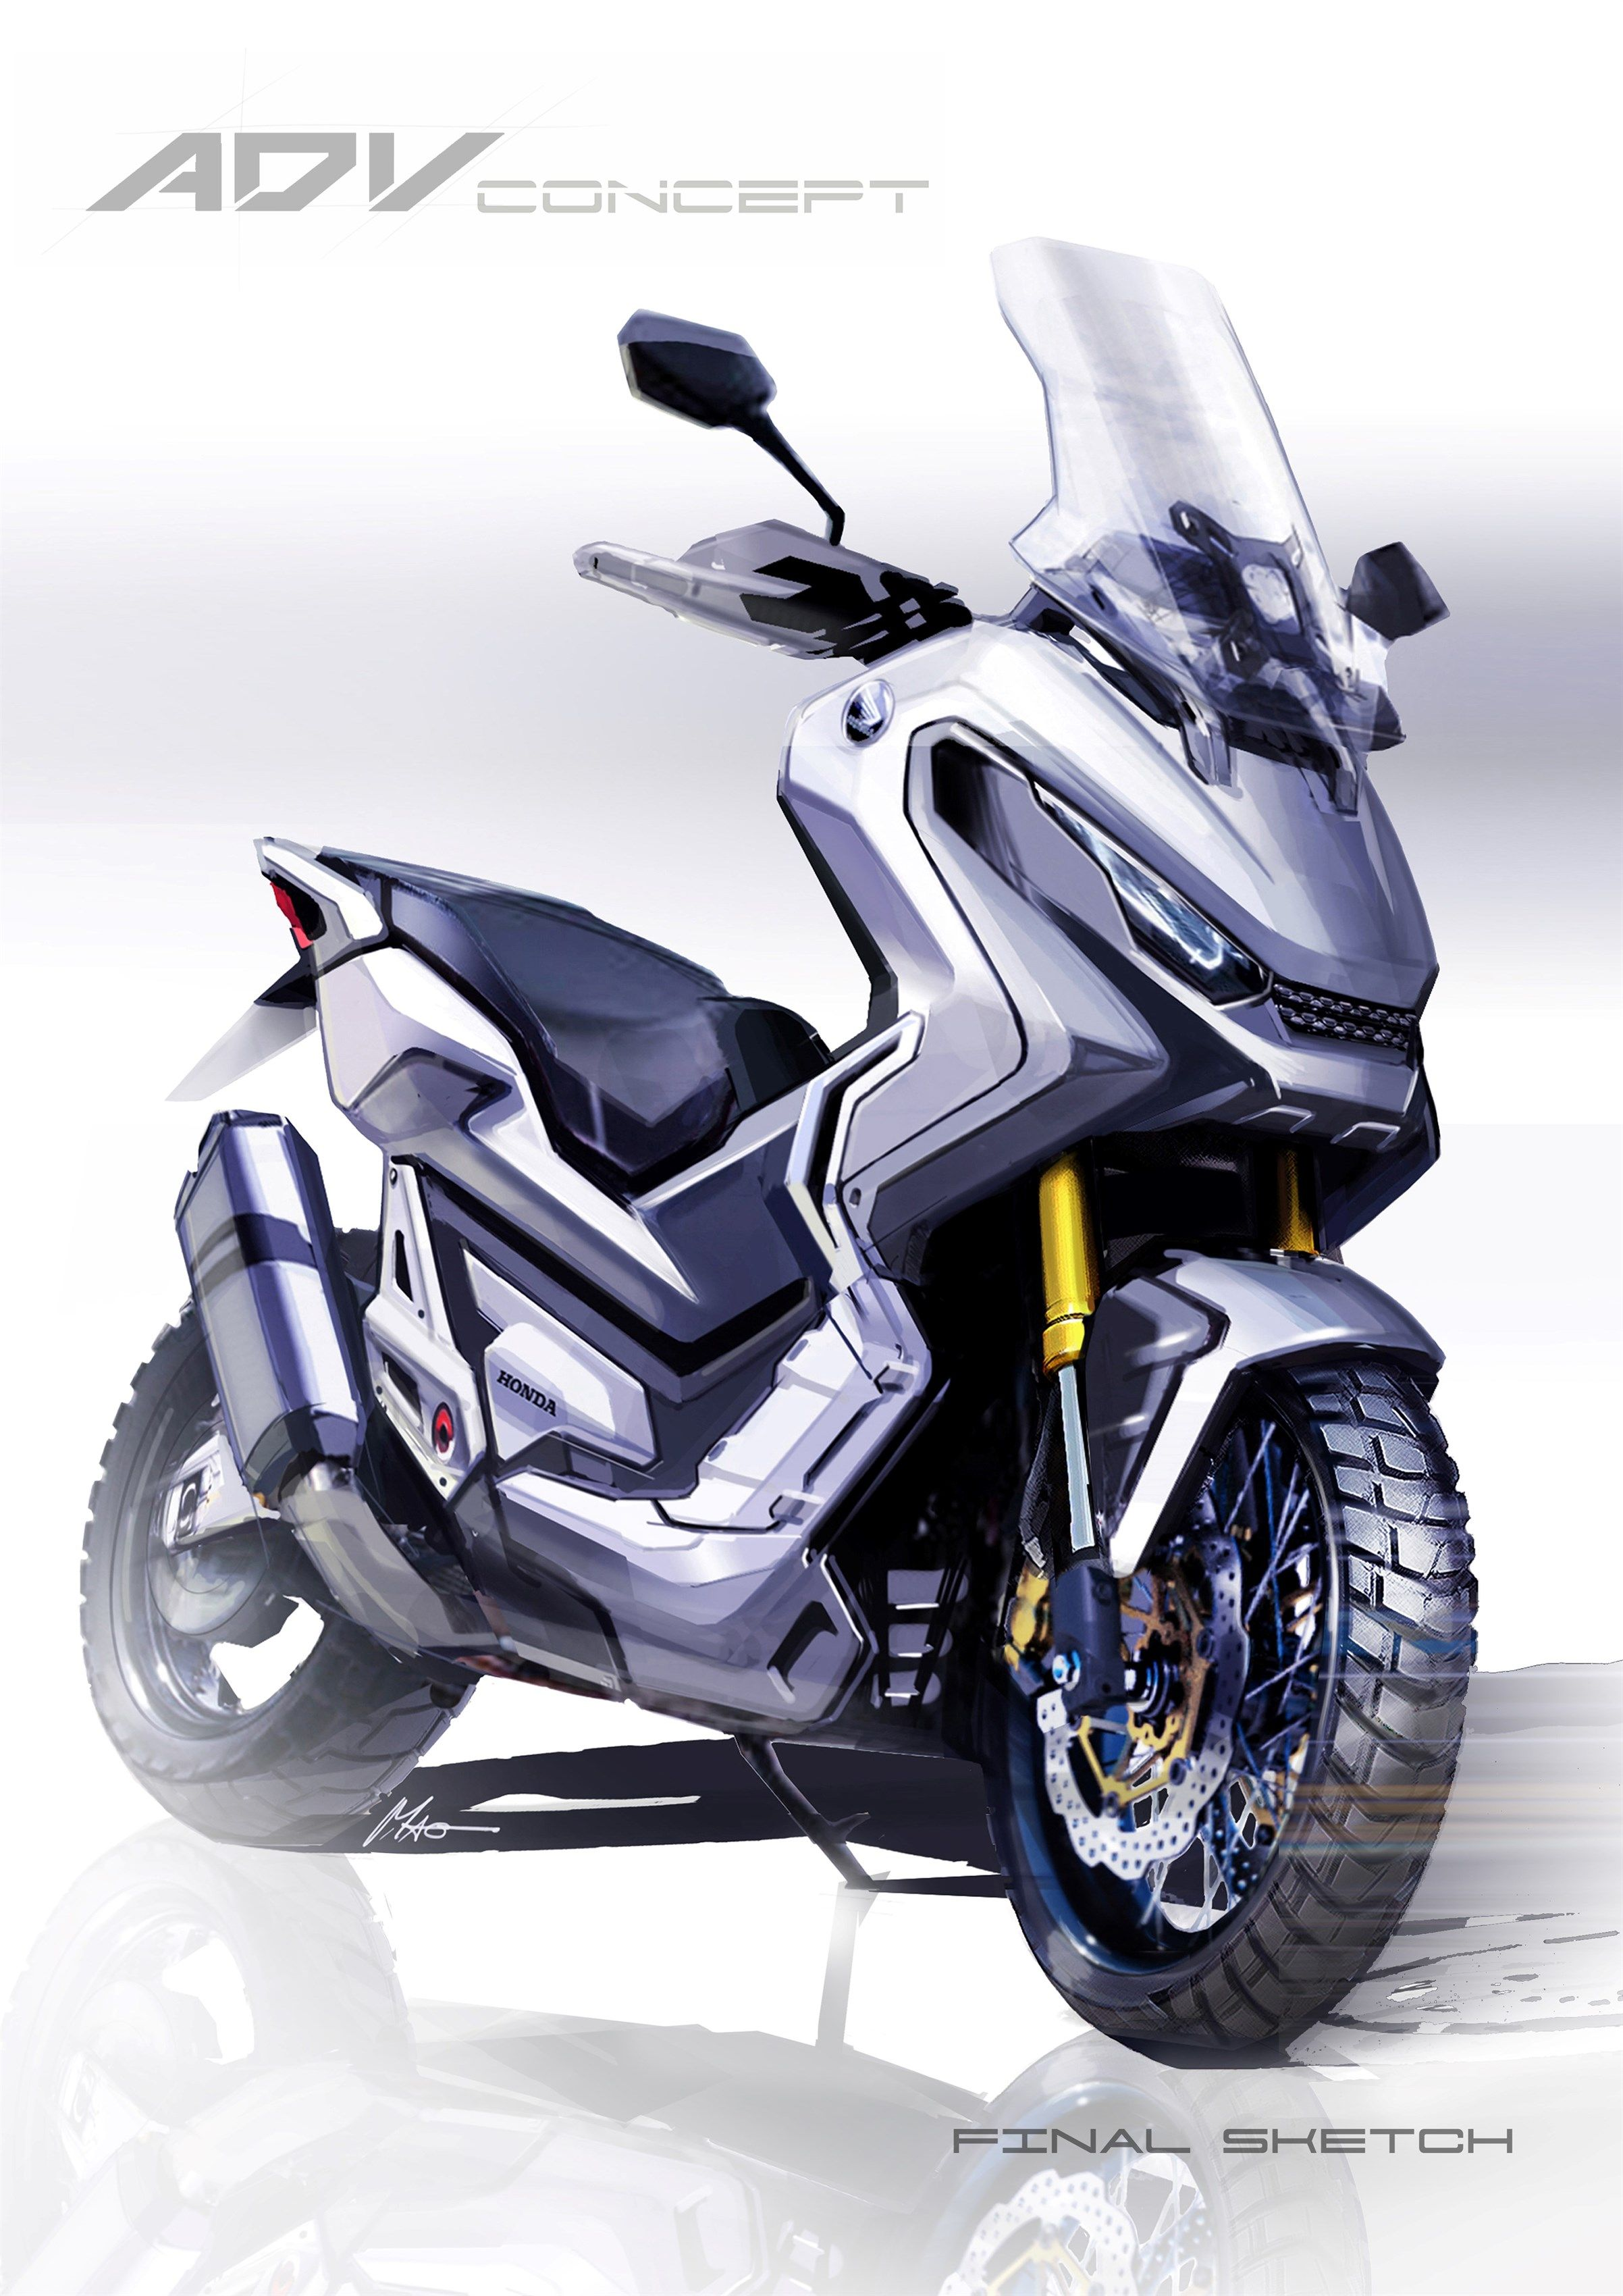 Honda X Adv A Scooter But Not As We Know It Motorhub